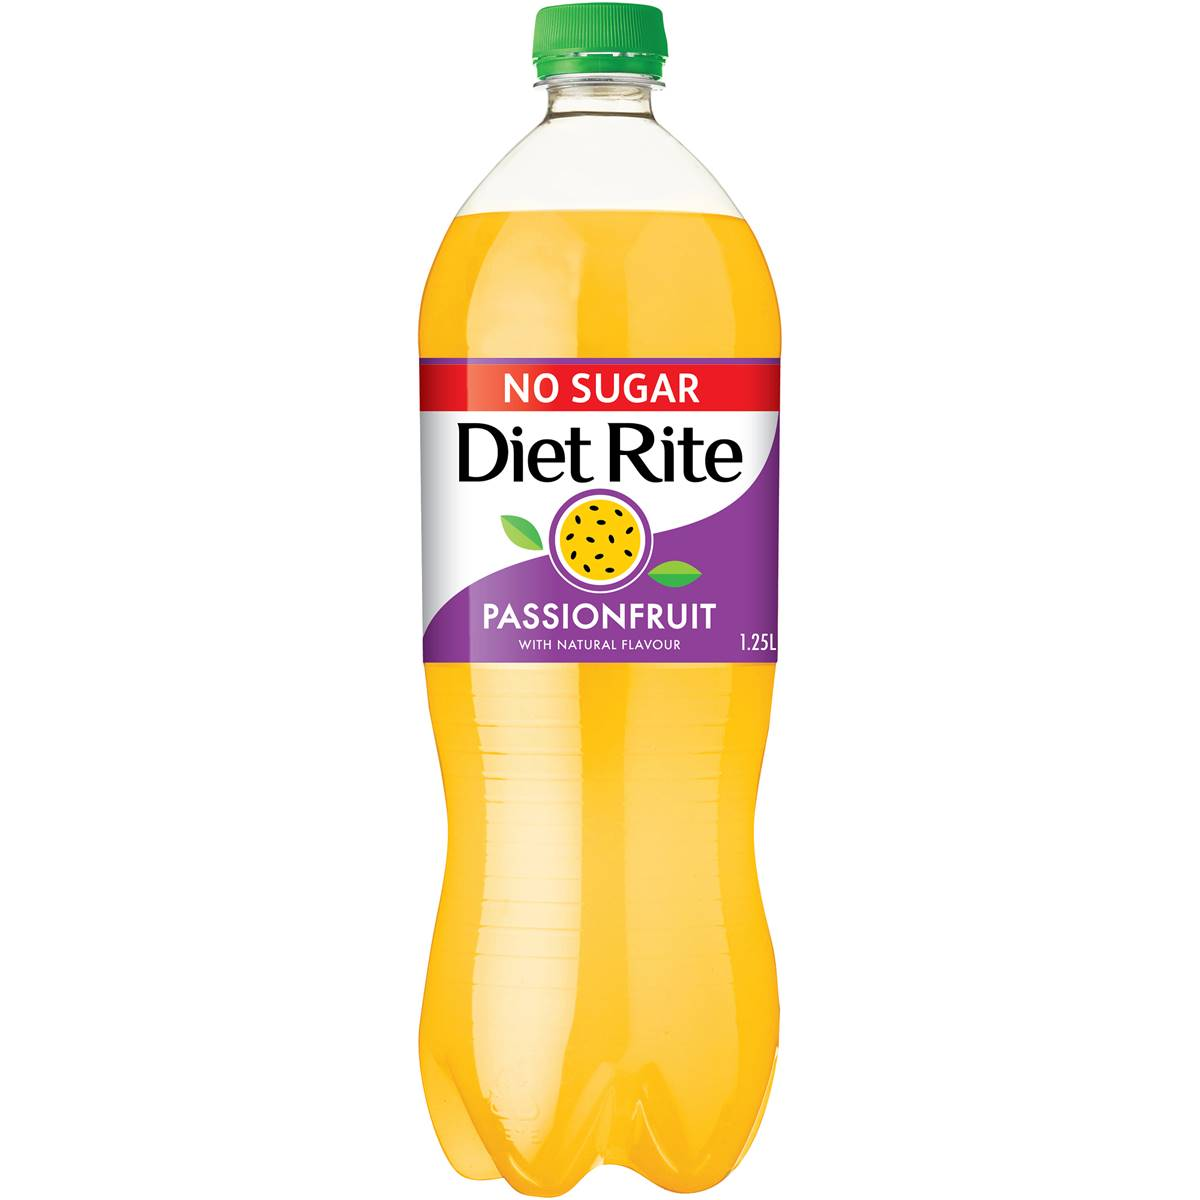 Squishy Drink Bottles : Woolworths Diet Rite Soft Drink Passionfruit Bottle - Compare Club